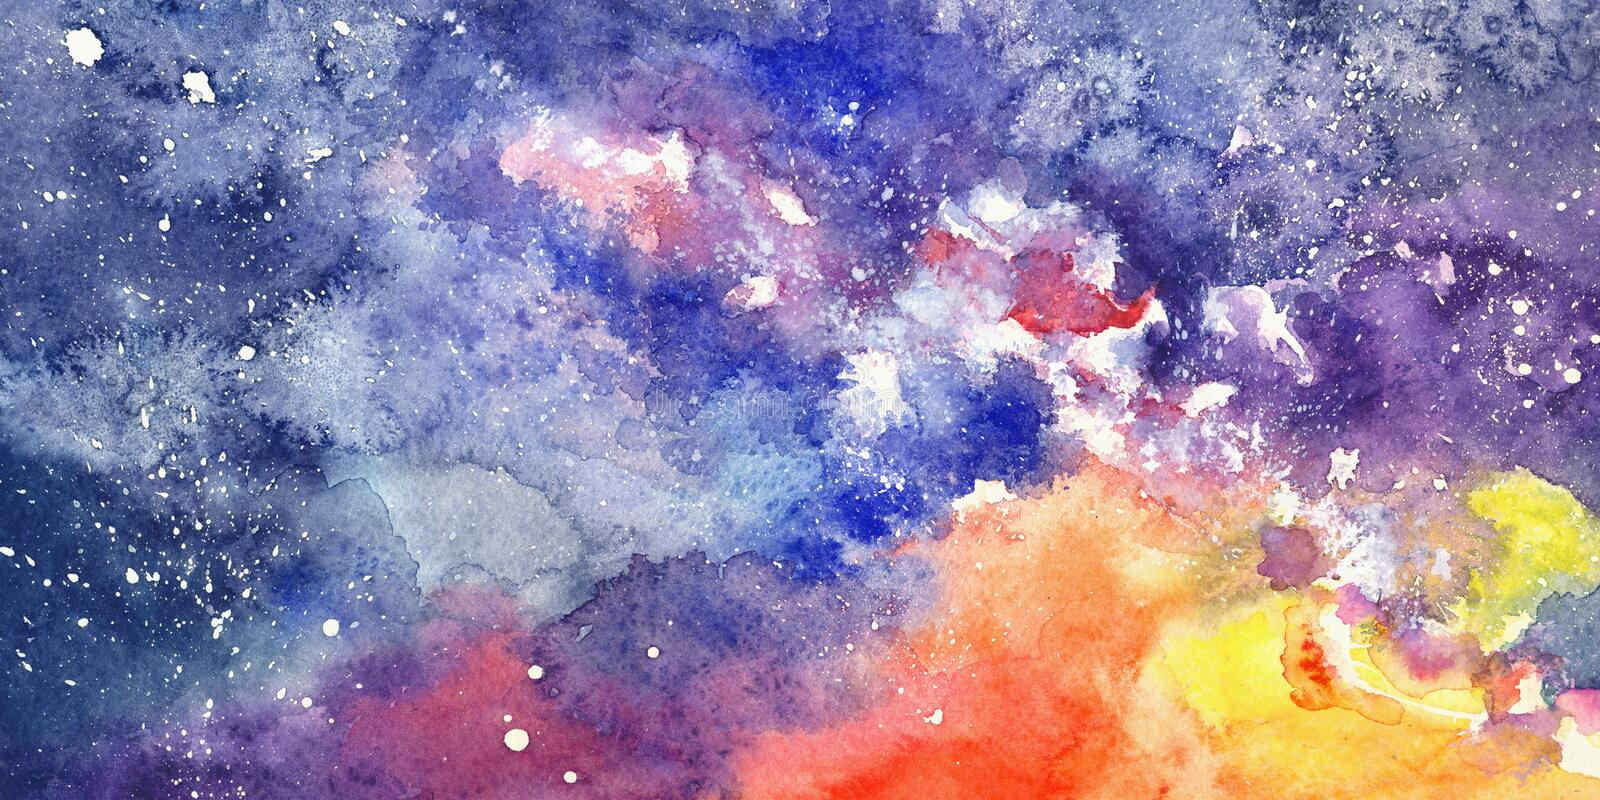 abstract starry night sky in watercolor stock illustration